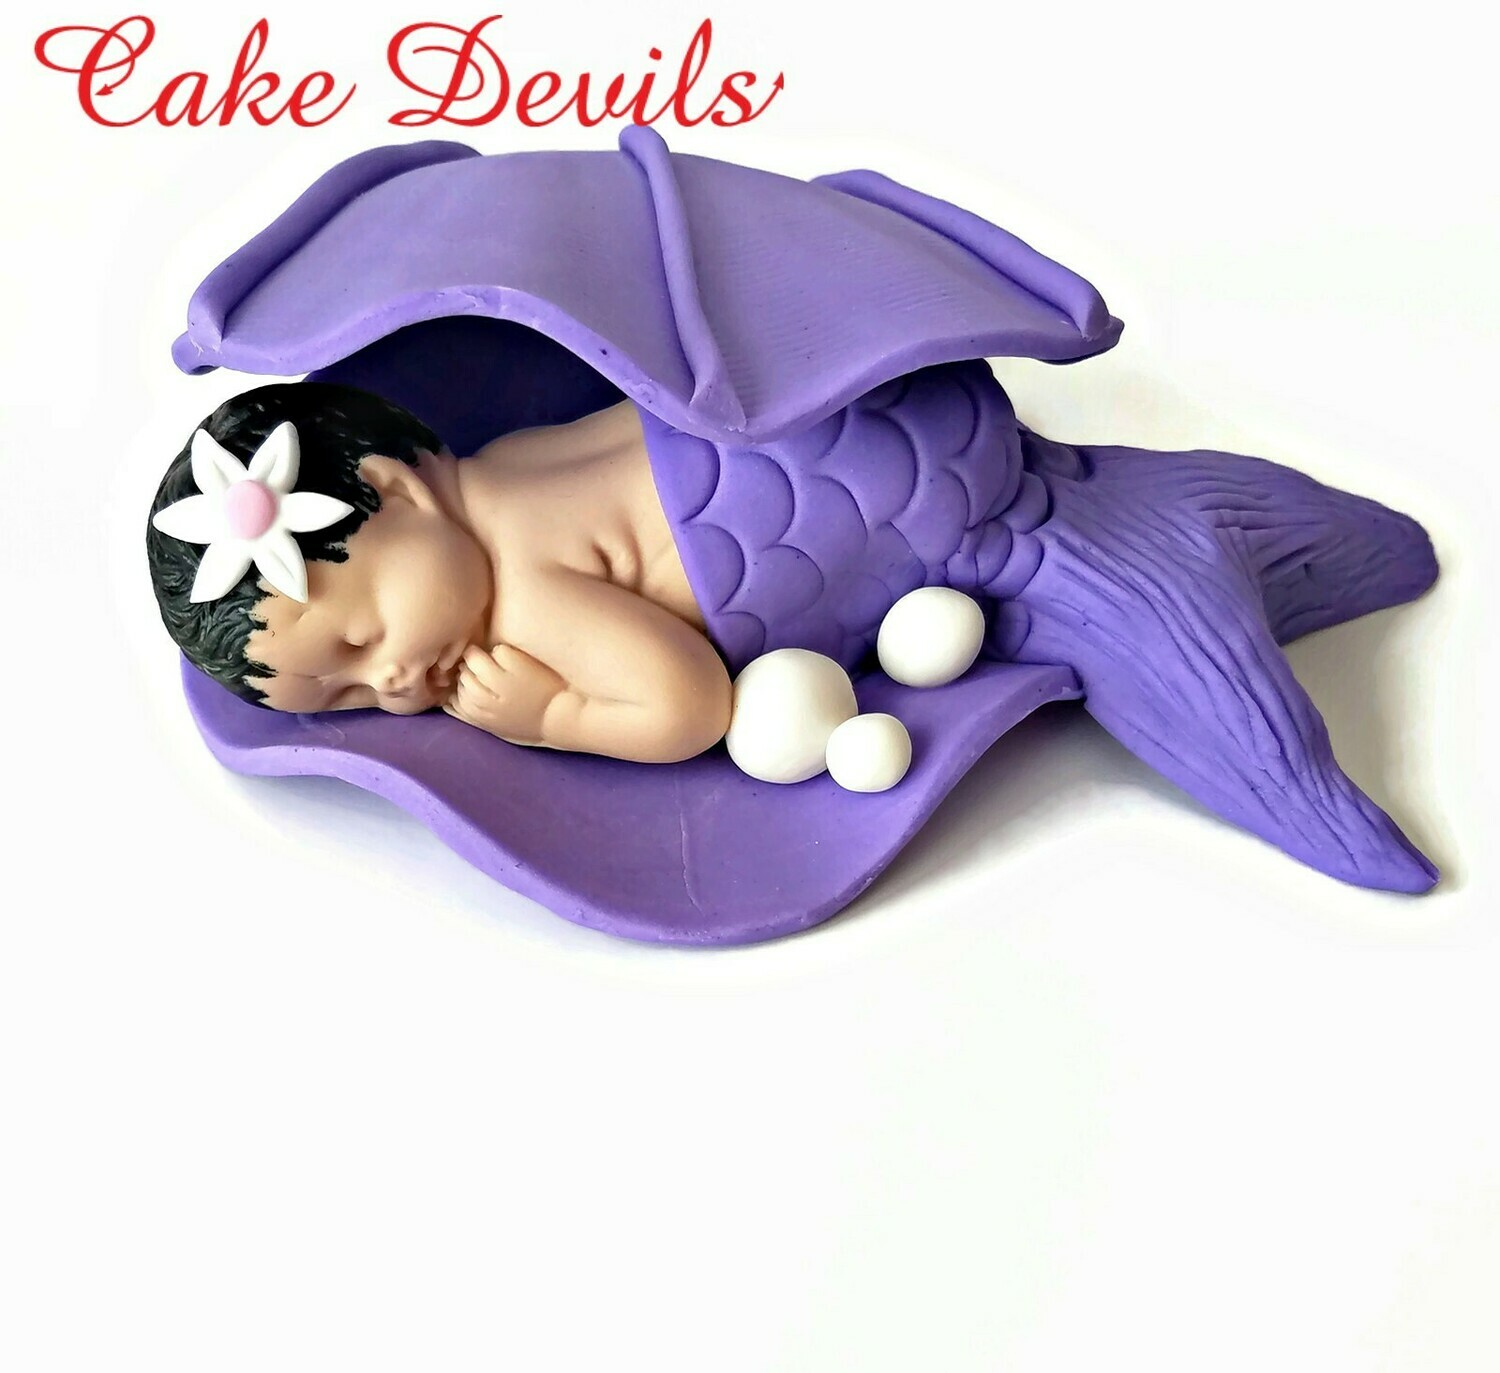 Mermaid Baby in a Waved Clam shell Baby Shower Cake Topper, Fondant Clam shell Cake Decoration